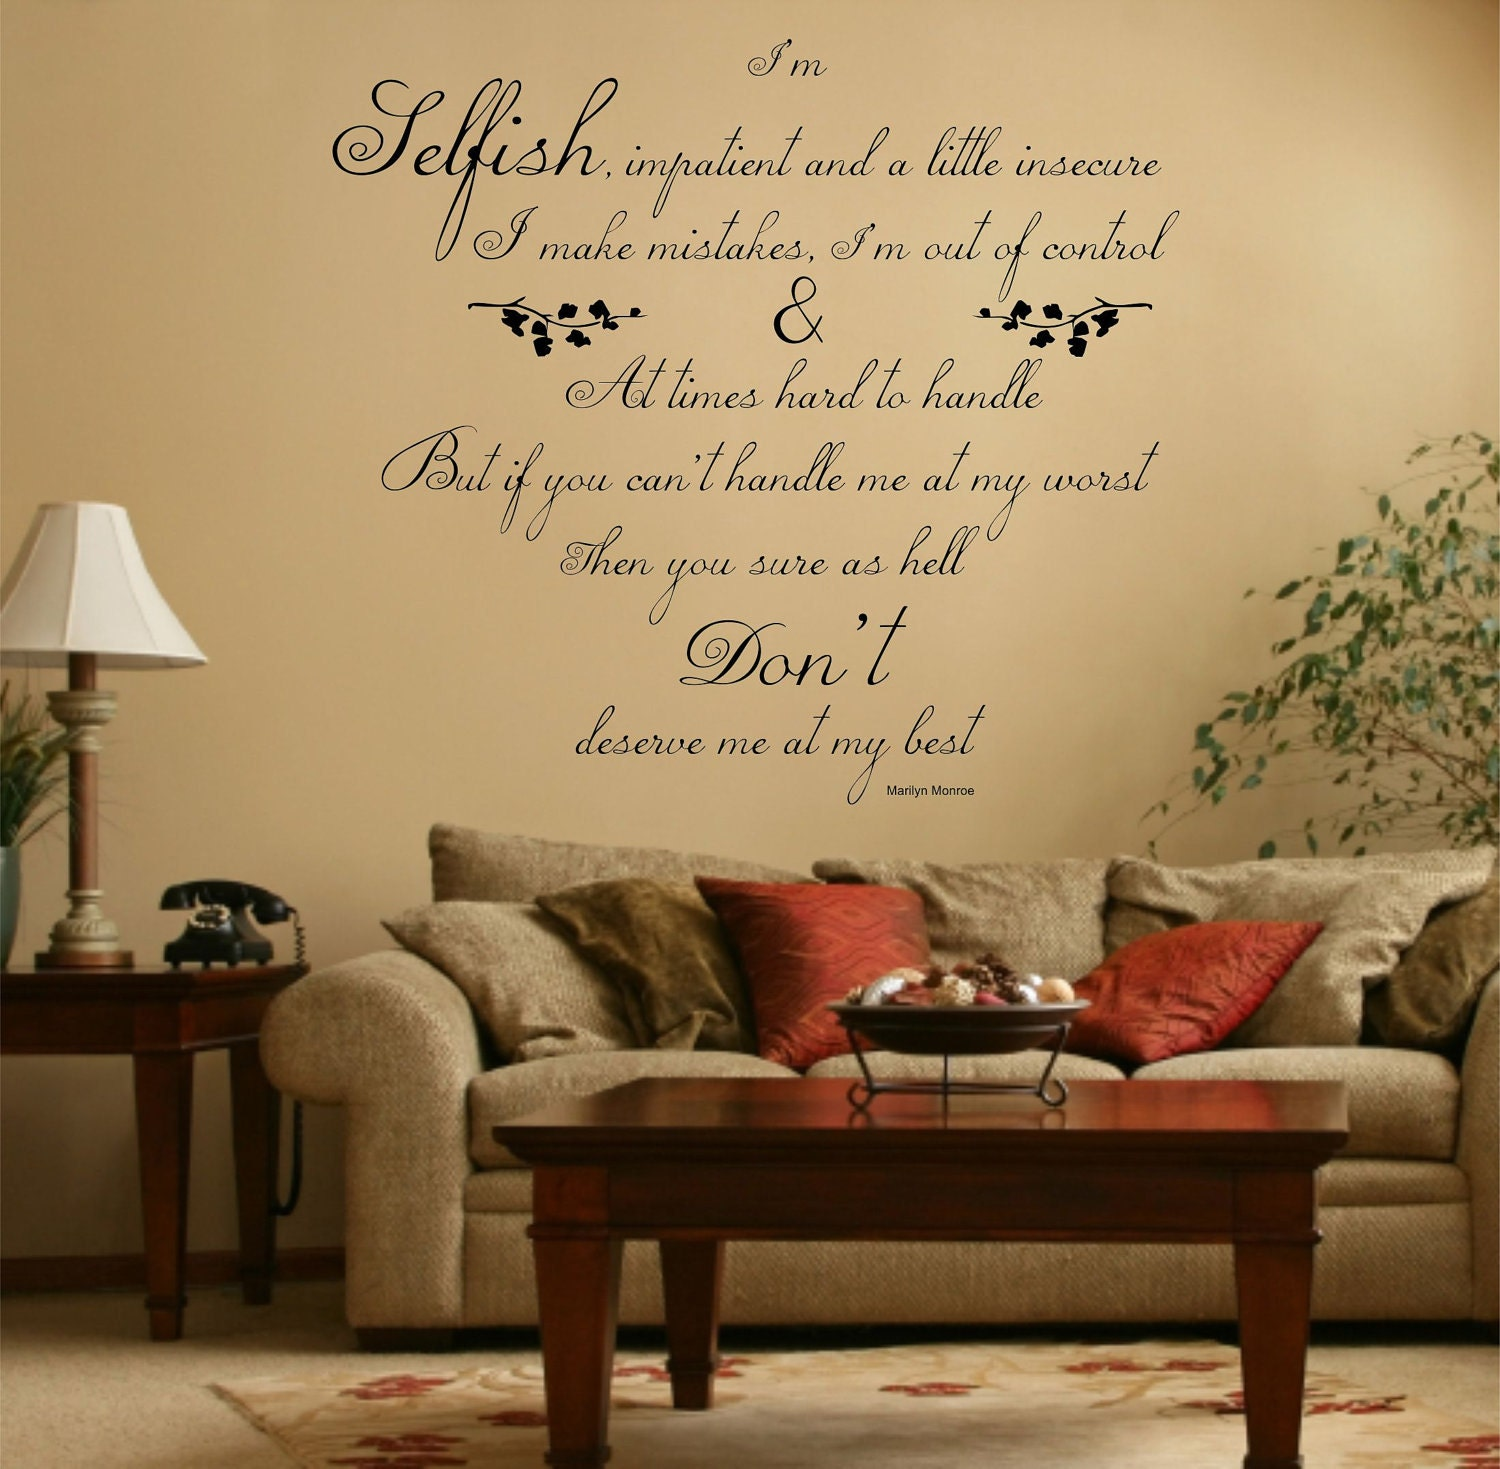 Marilyn Monroe Wall Art Quotes - Elitflat